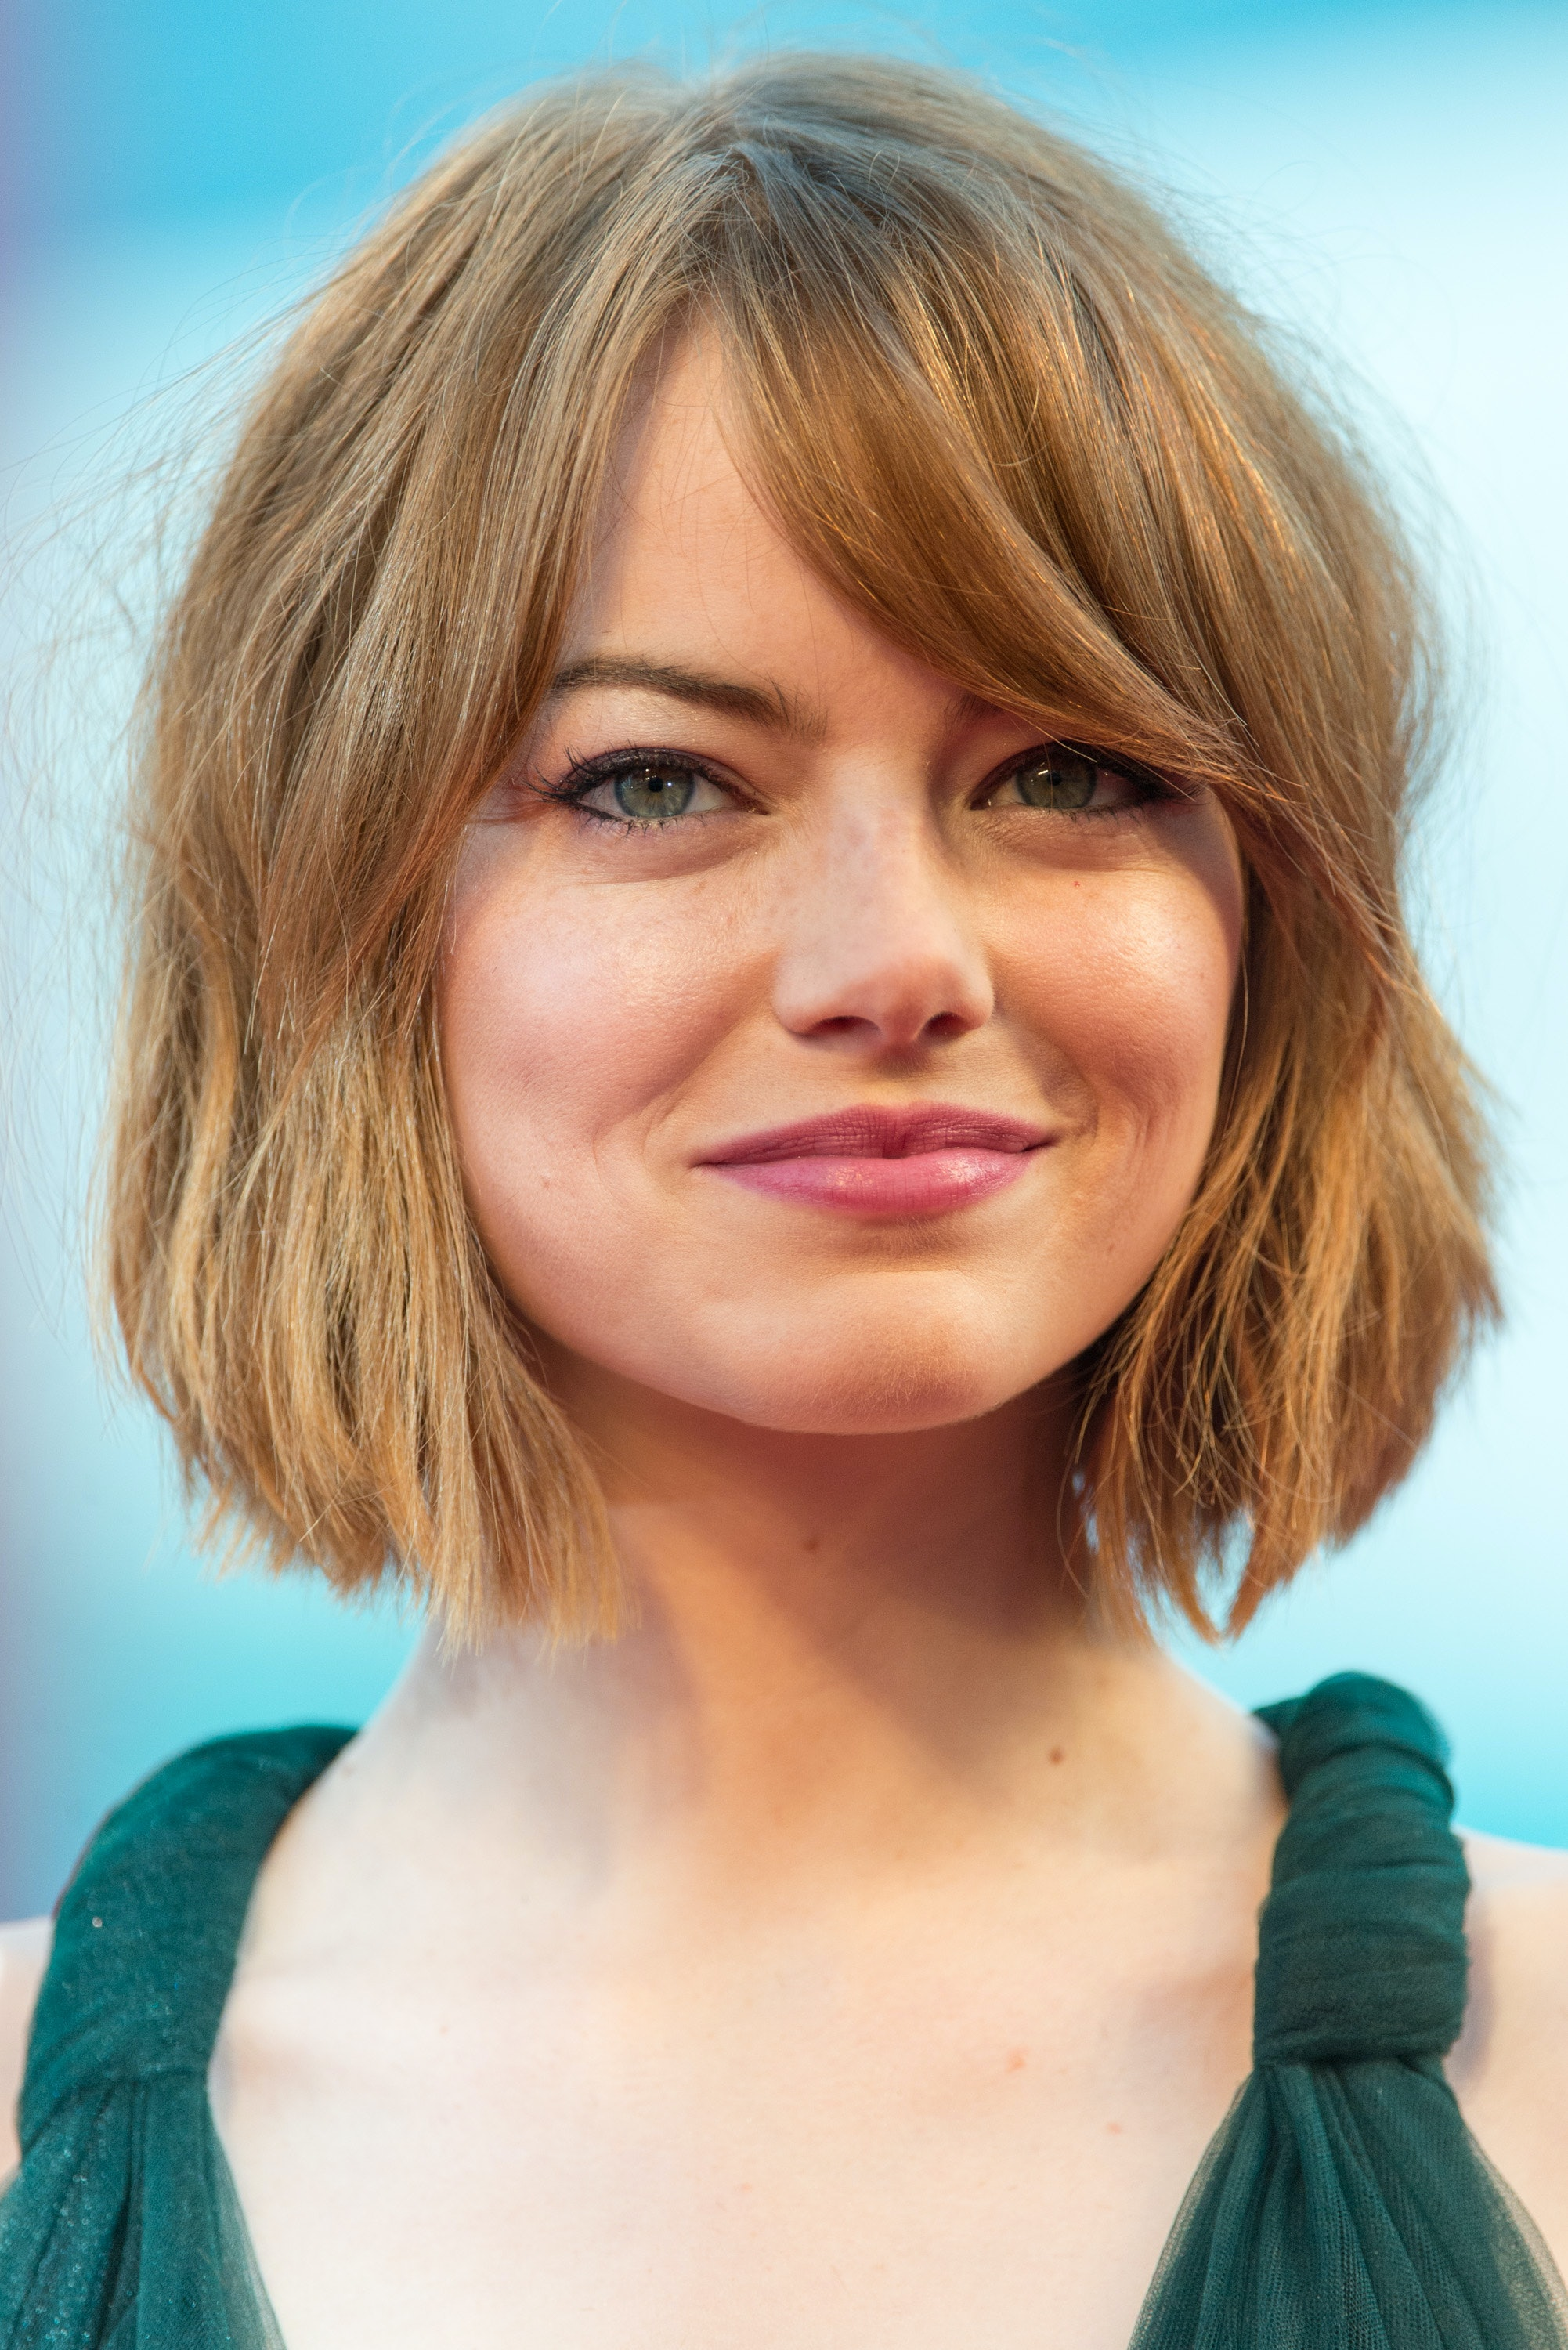 Why Short Hair Is The Best 9 Reasons You Feel Like A New Human After Chopping Your Hair Off